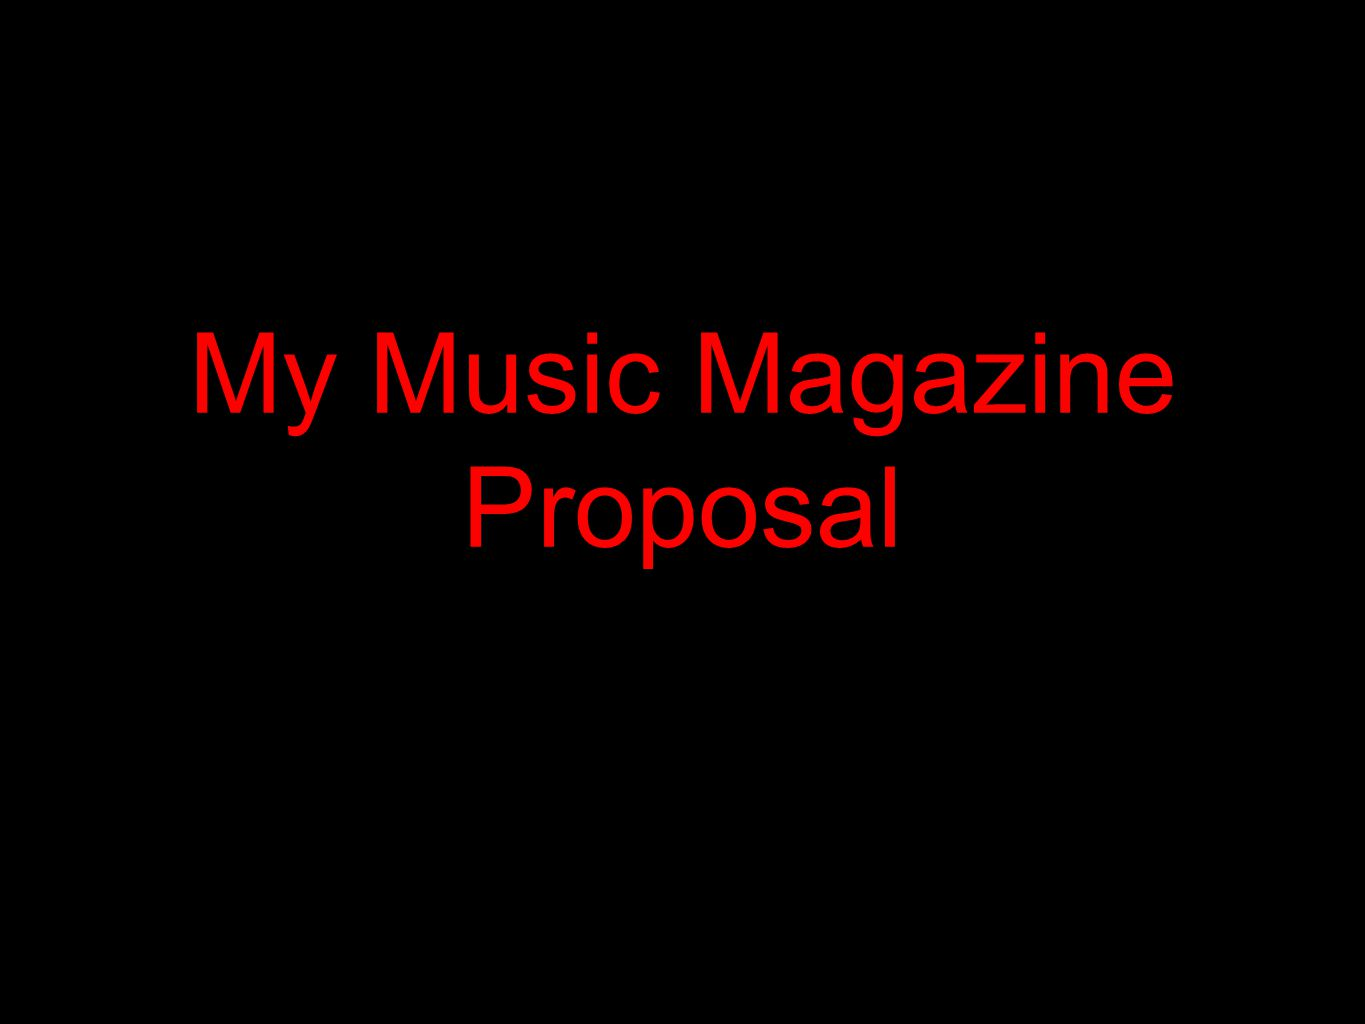 My Music Magazine Proposal